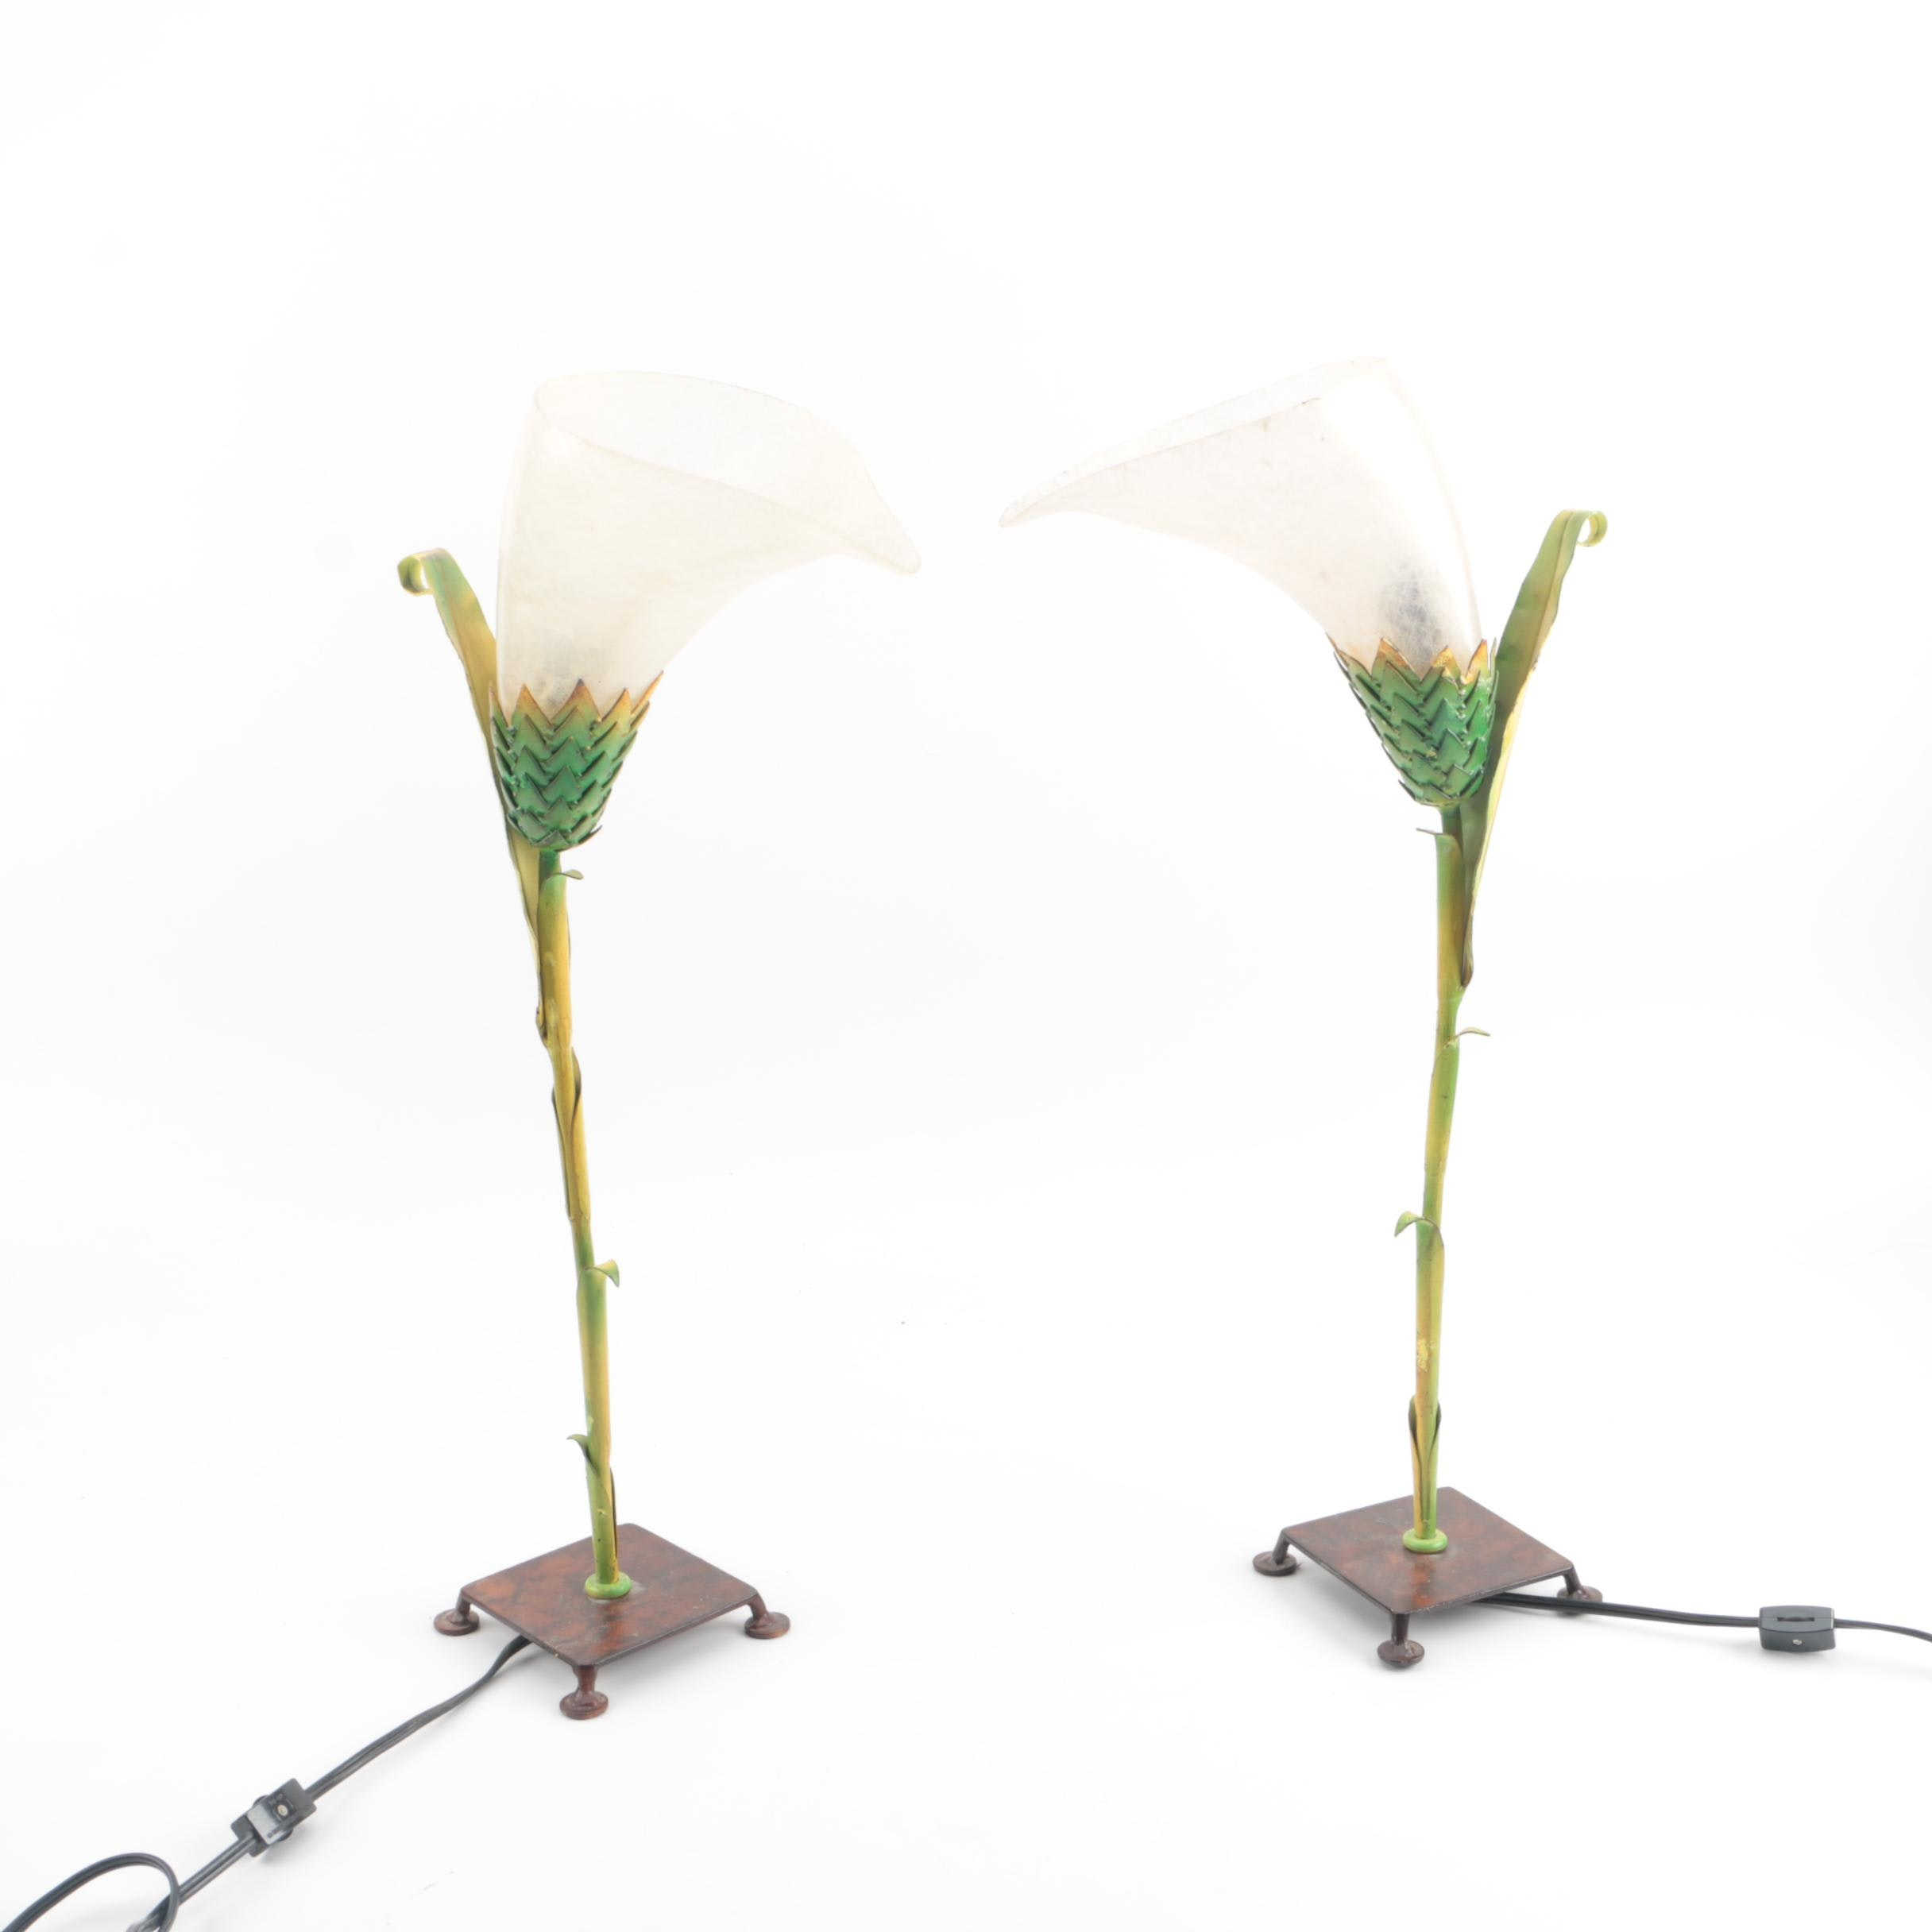 Metal Calla Lilly Accent Lamps with Fiberglass Shades